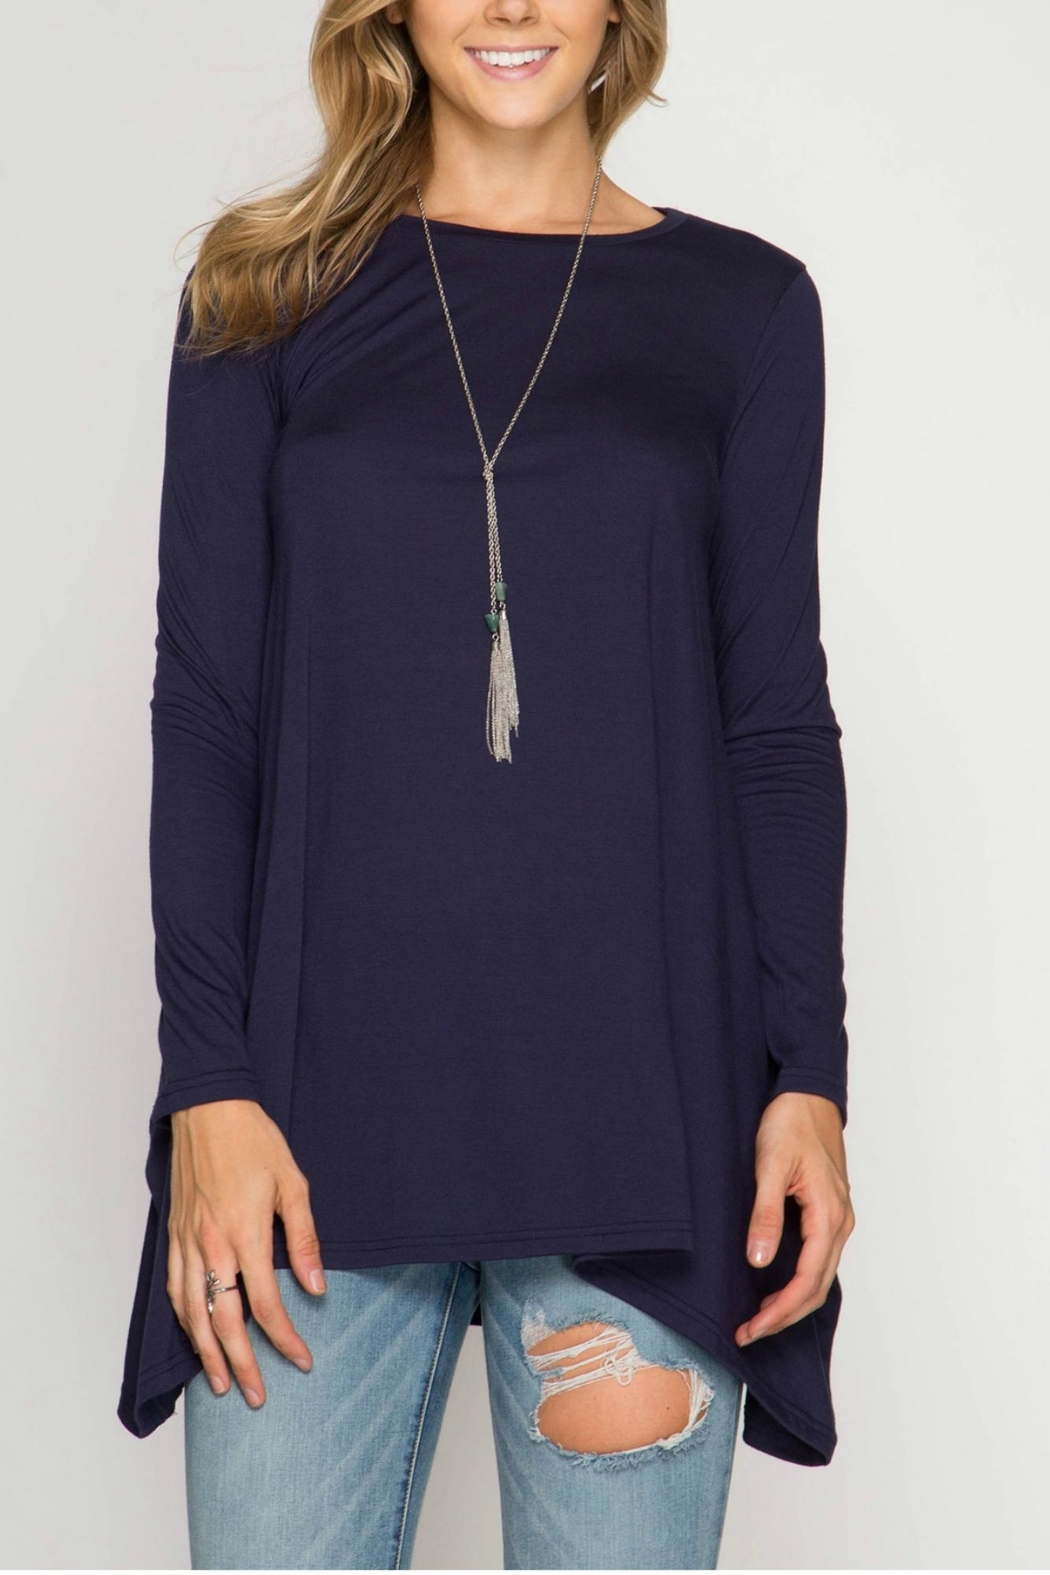 She + Sky Asymmetrical Shirt - Front Cropped Image